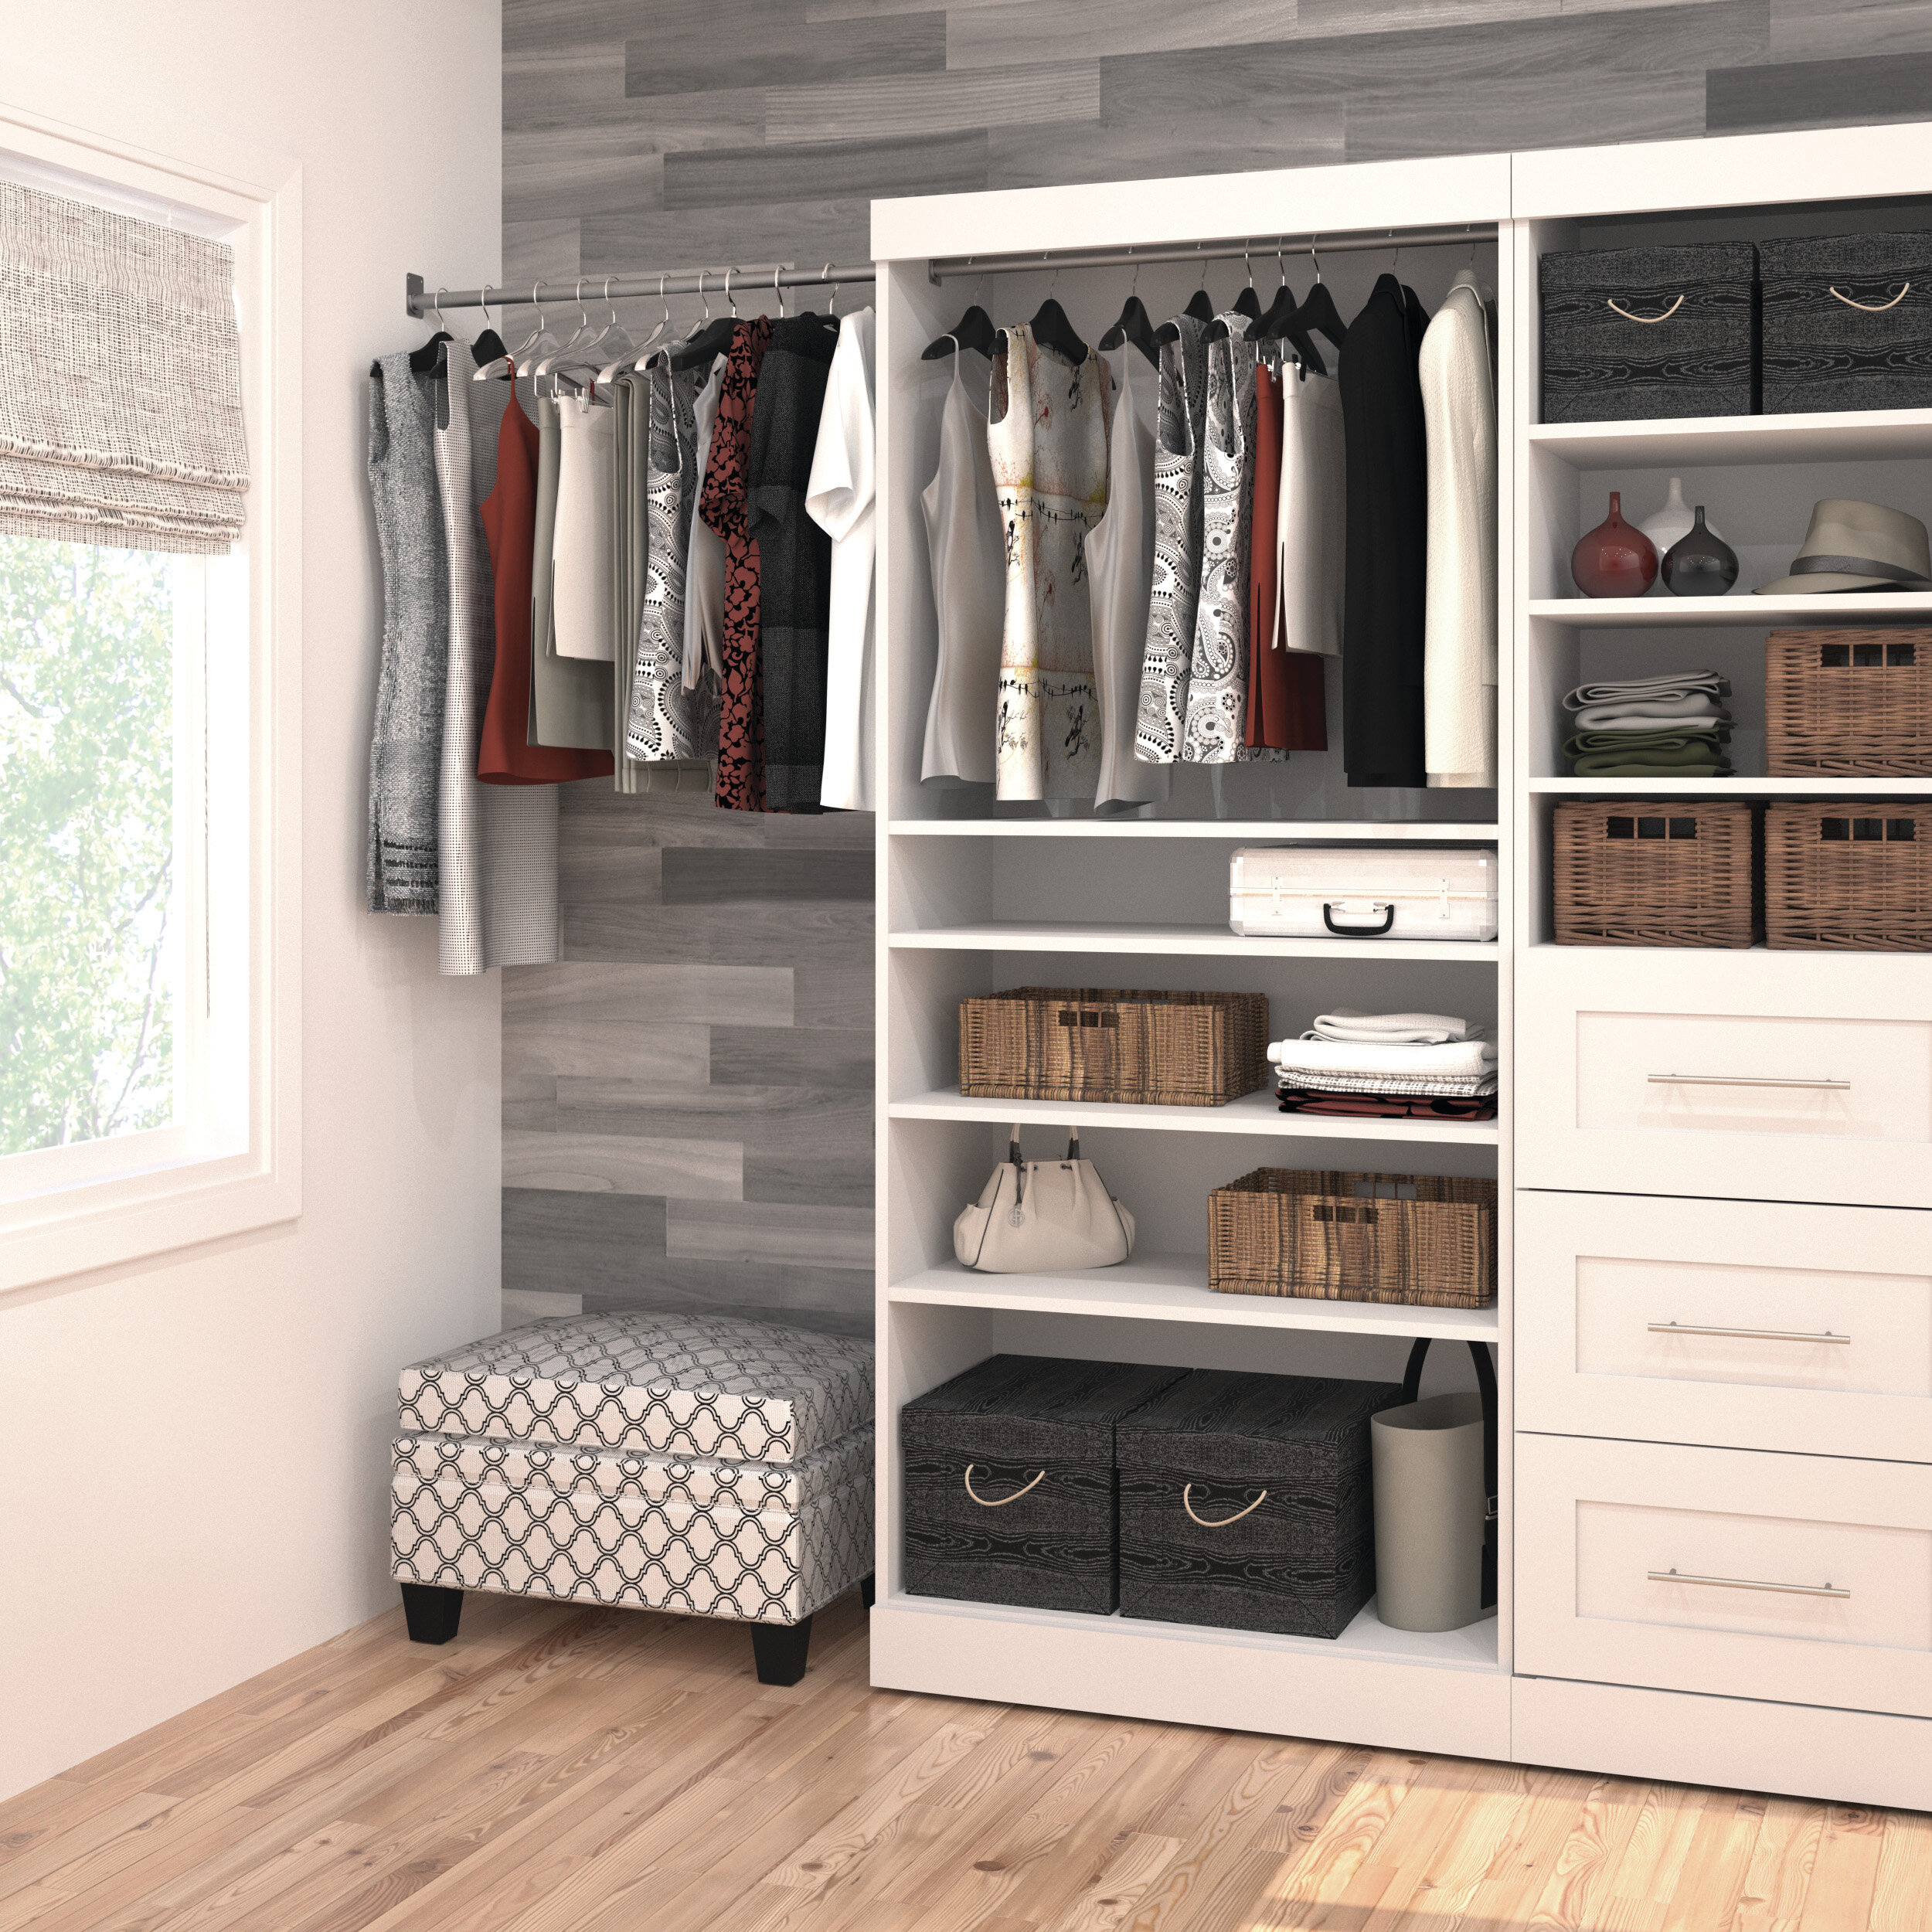 baskets white reachinclosets closet units closets etc reach hang and radial in for wire shelving designs double drawers with